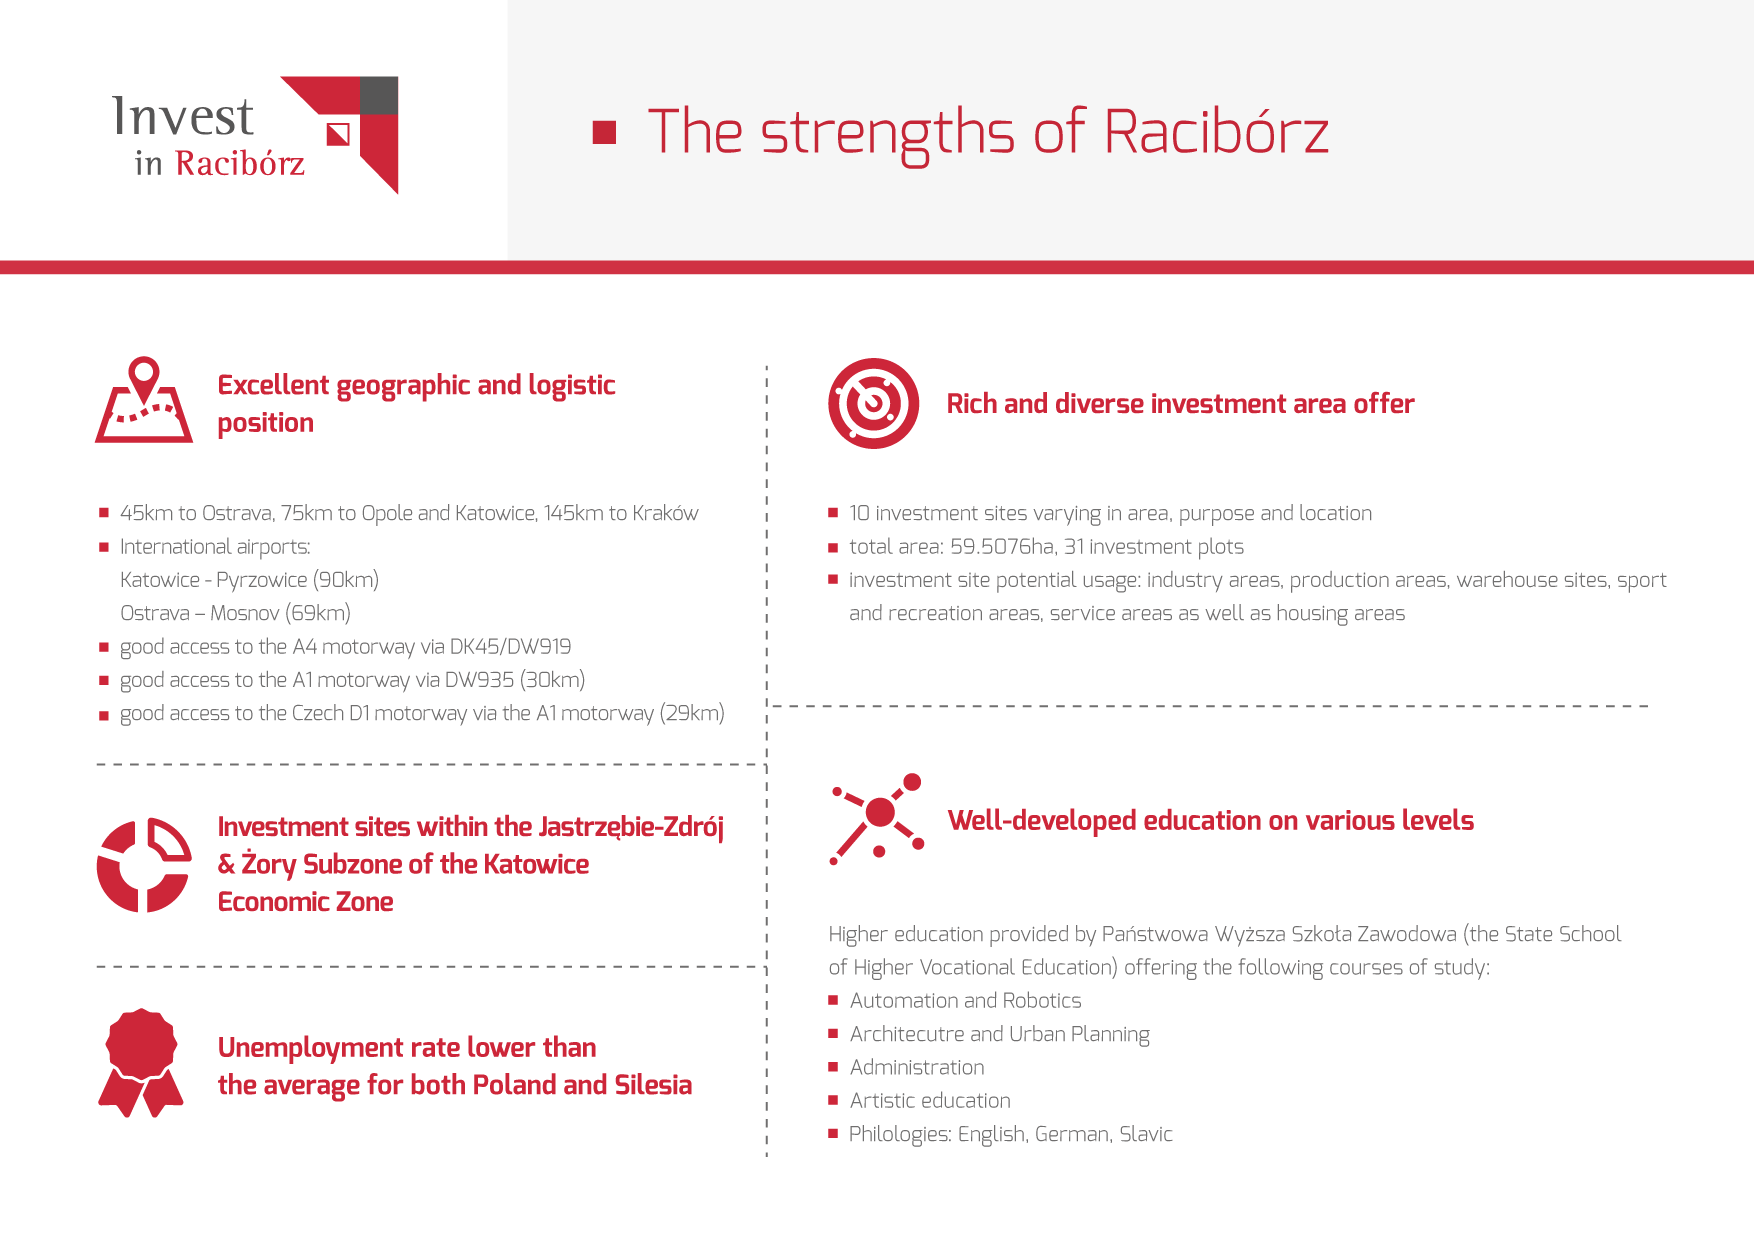 Infographic showing the strengths of Racibórz